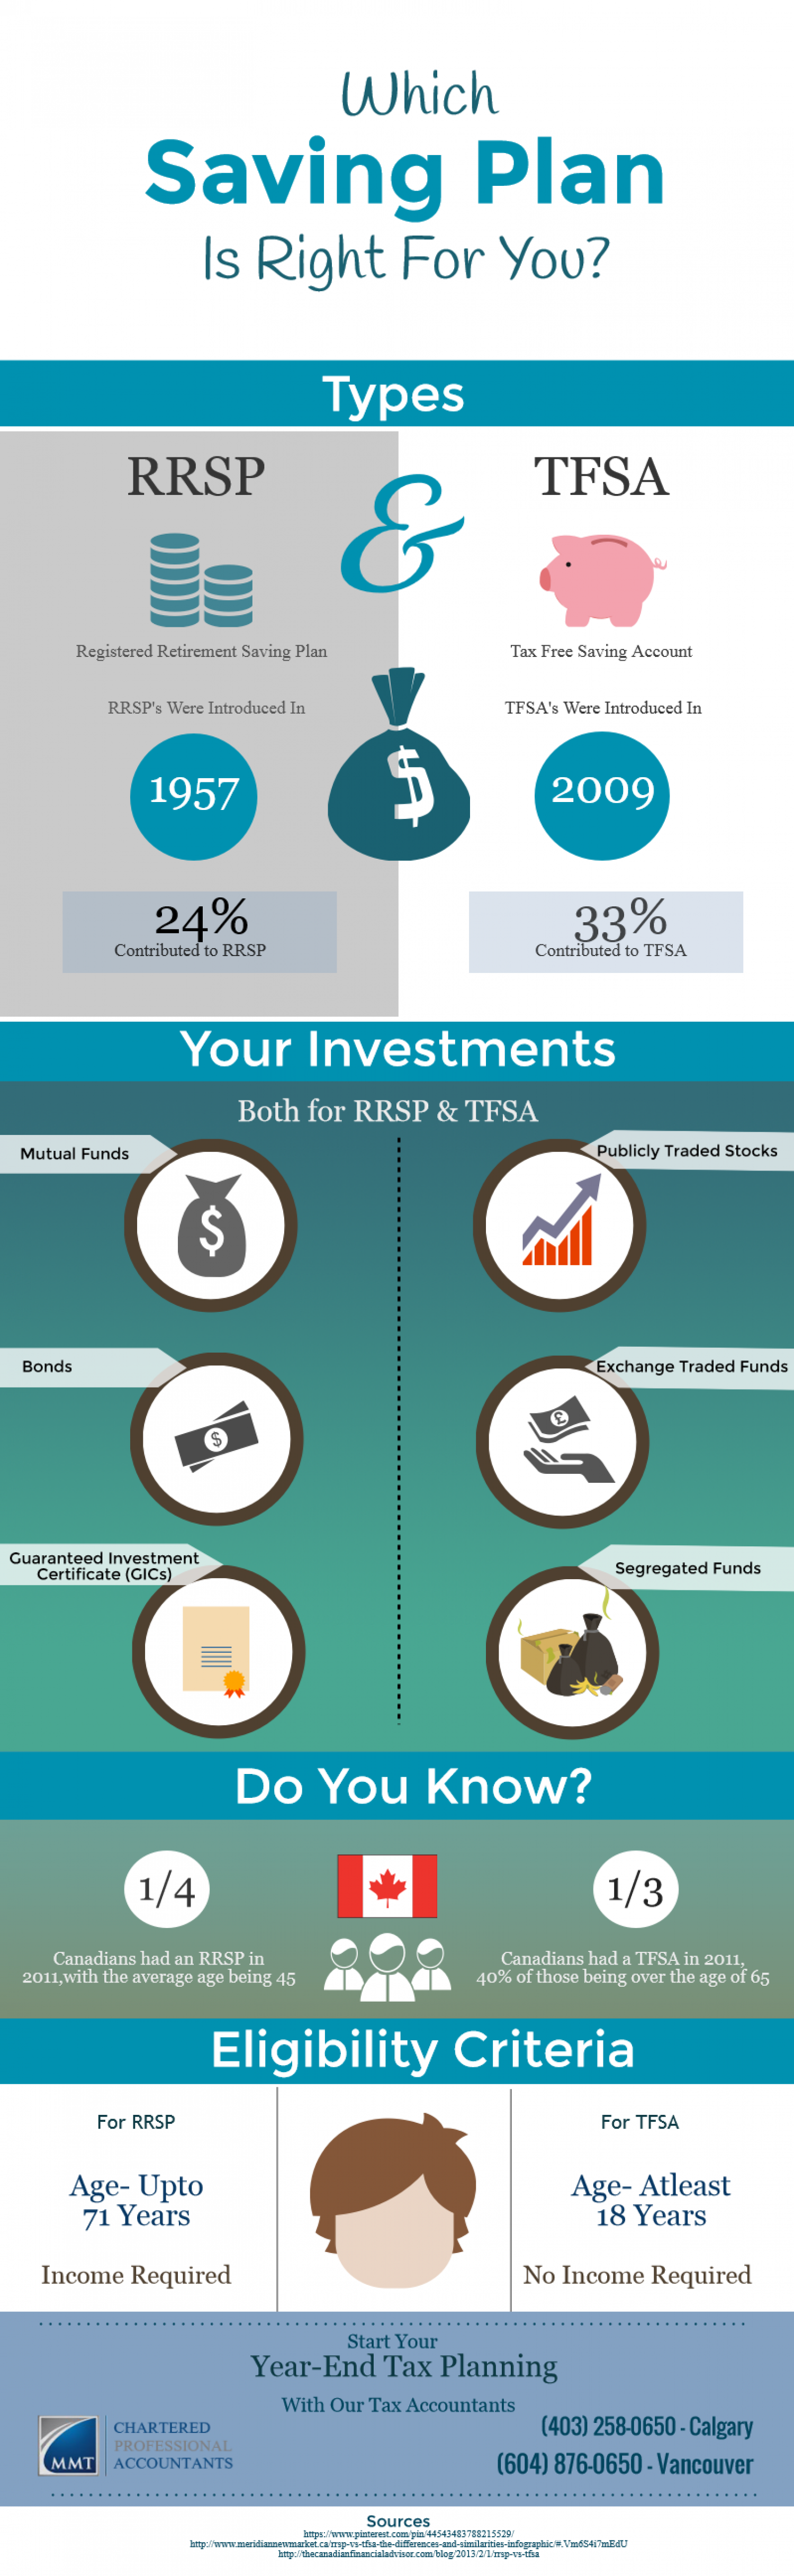 RRSP Or TFSA? Ask Tax Accountant From Calgary & Vancouver Infographic